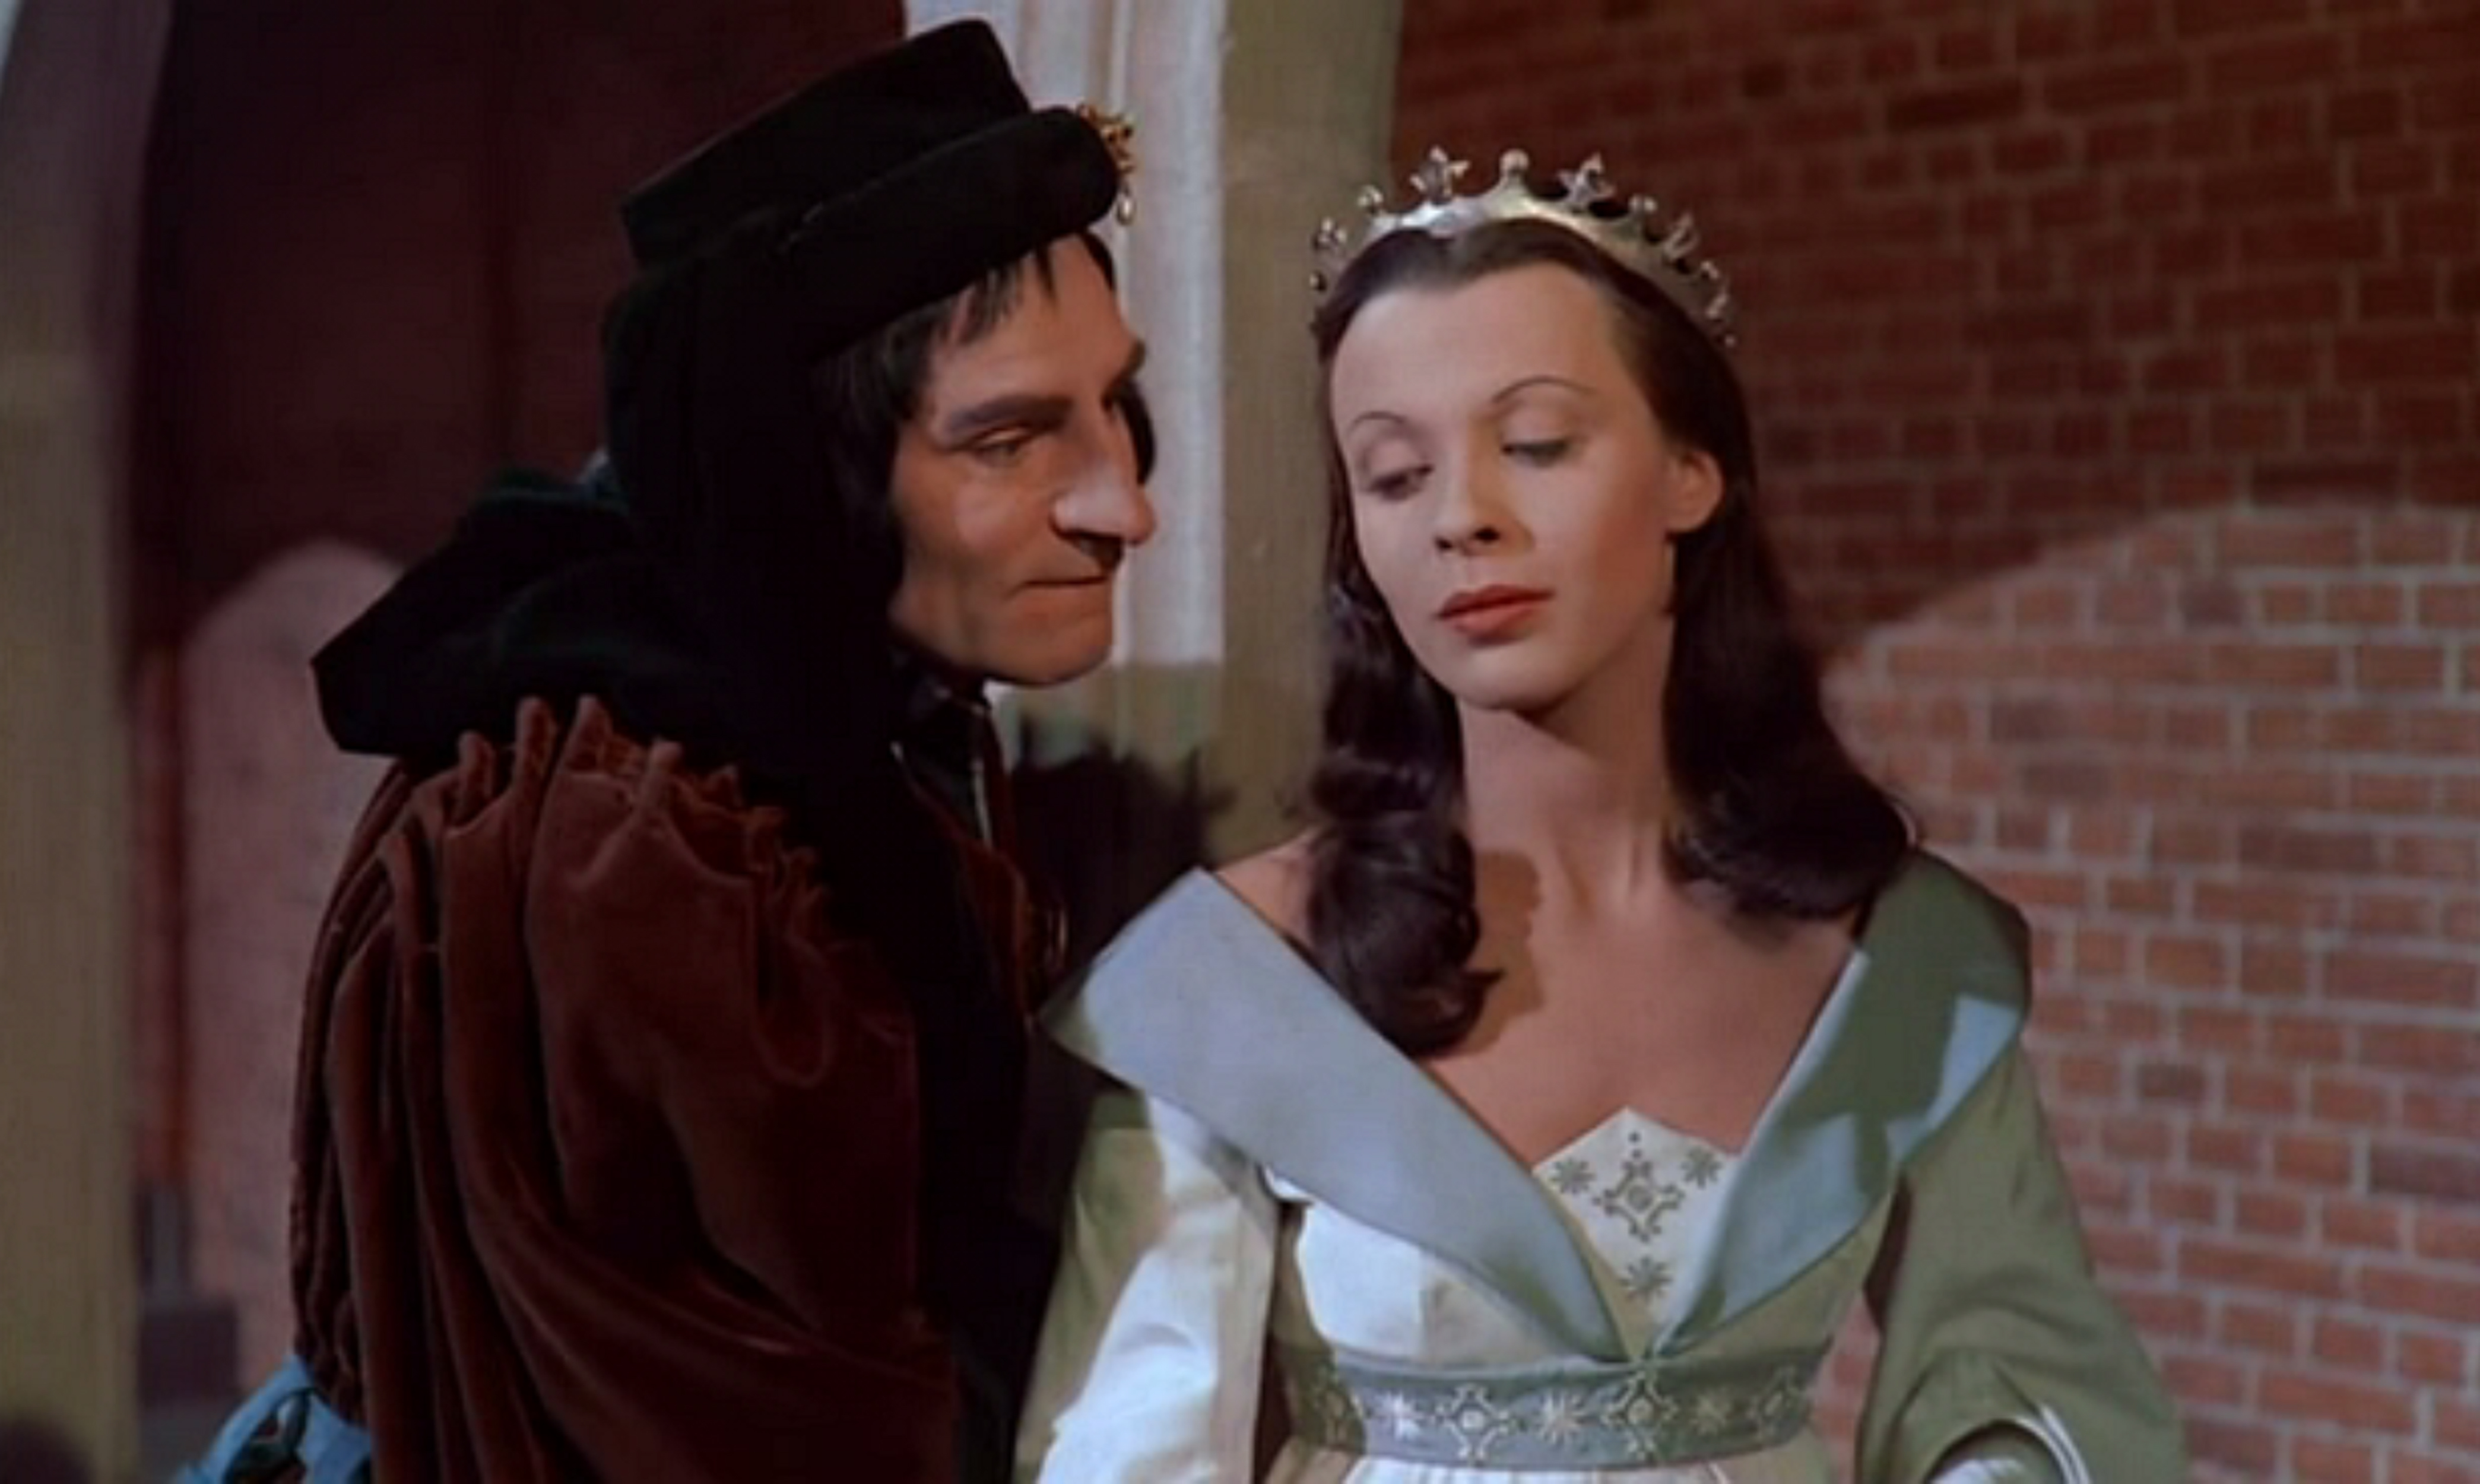 Laurence Olivier and Claire Bloom in Richard III (1955)